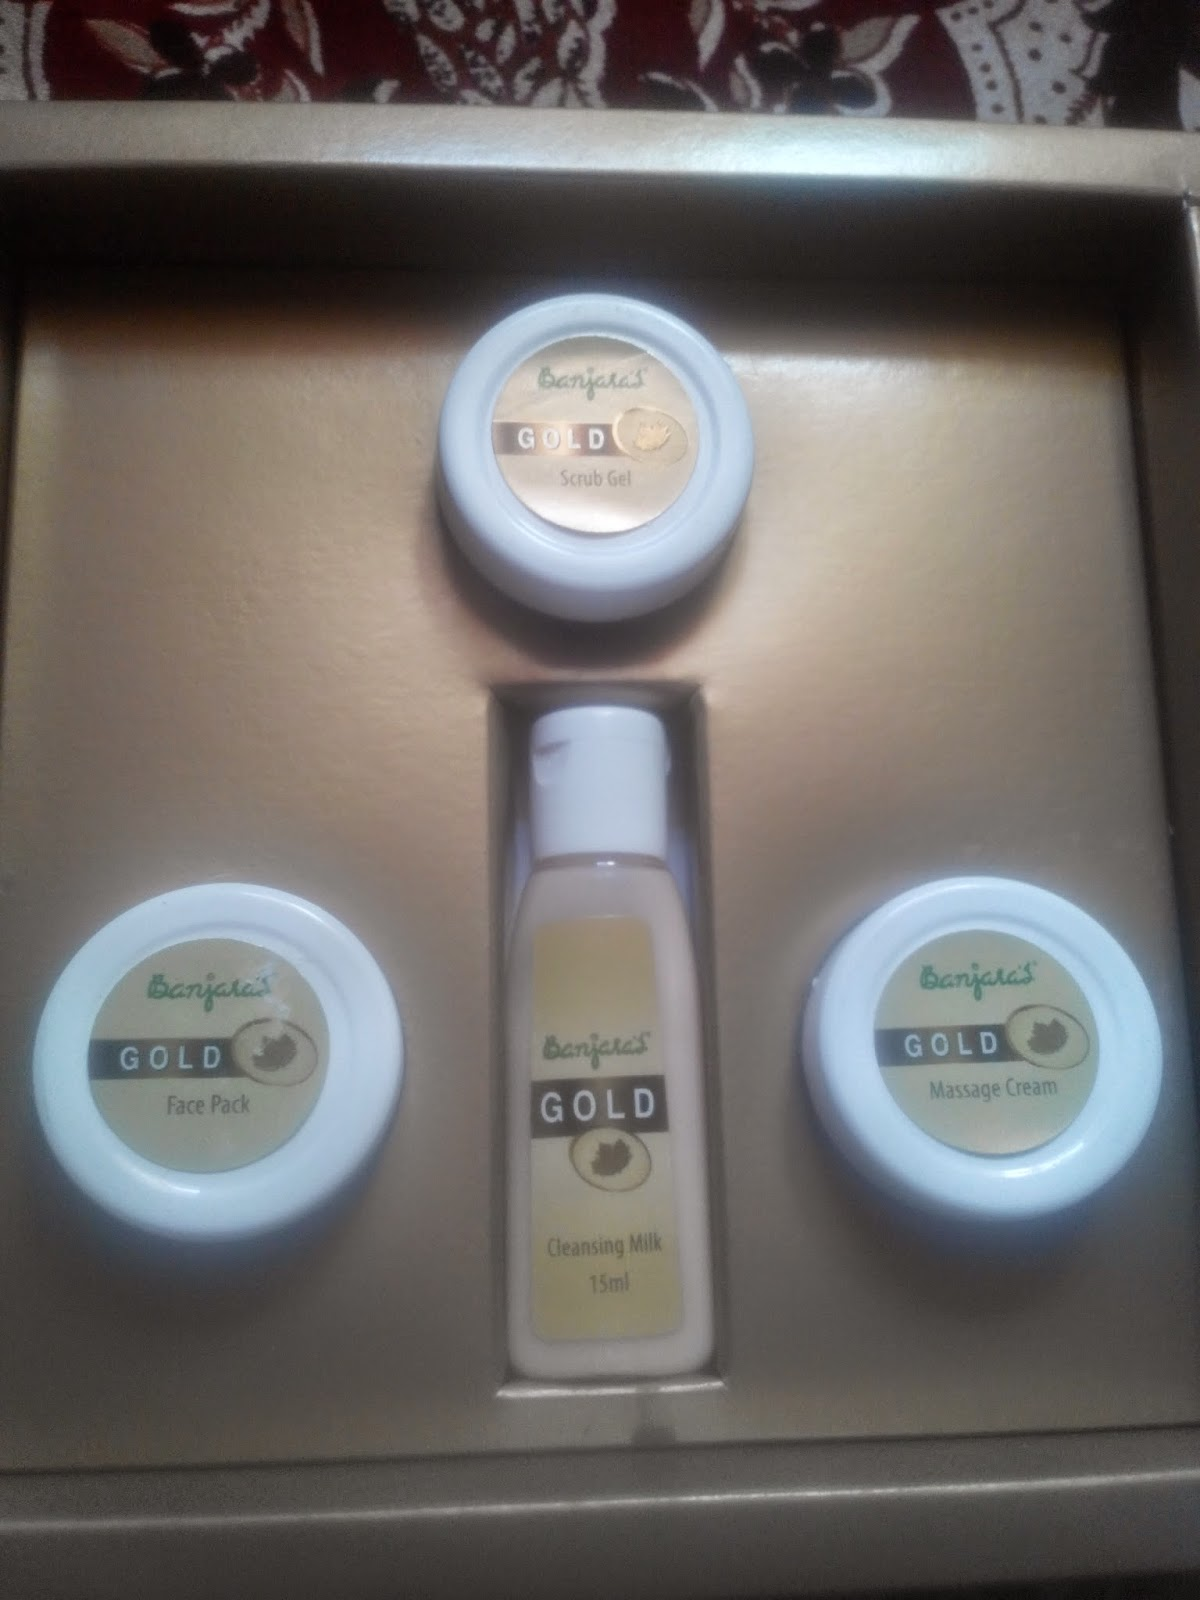 Banjaras Gold Facial Kit, Gold cleansing milk, Gold scrub gel, gold Massage Cream, Gold face pack